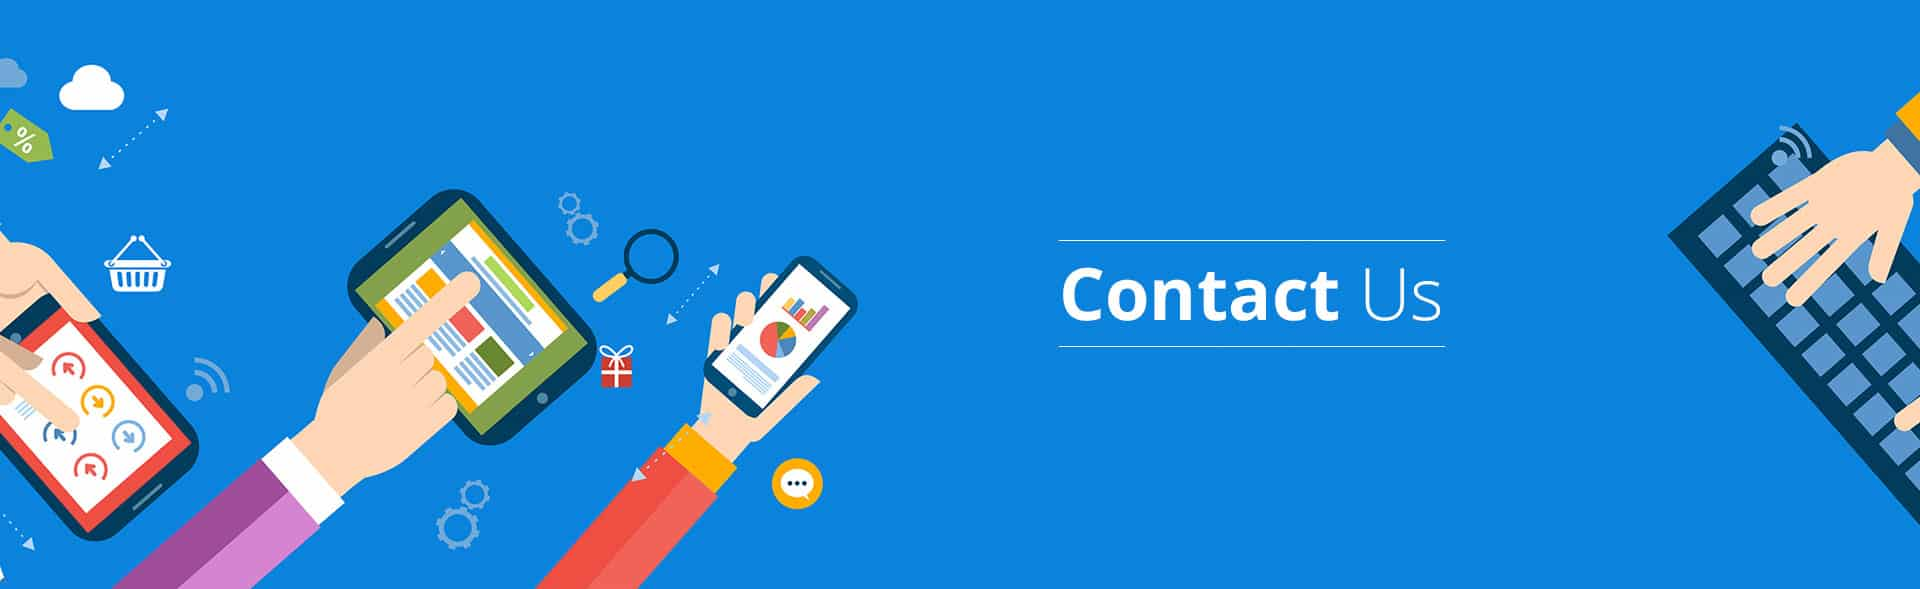 contact us banner 2